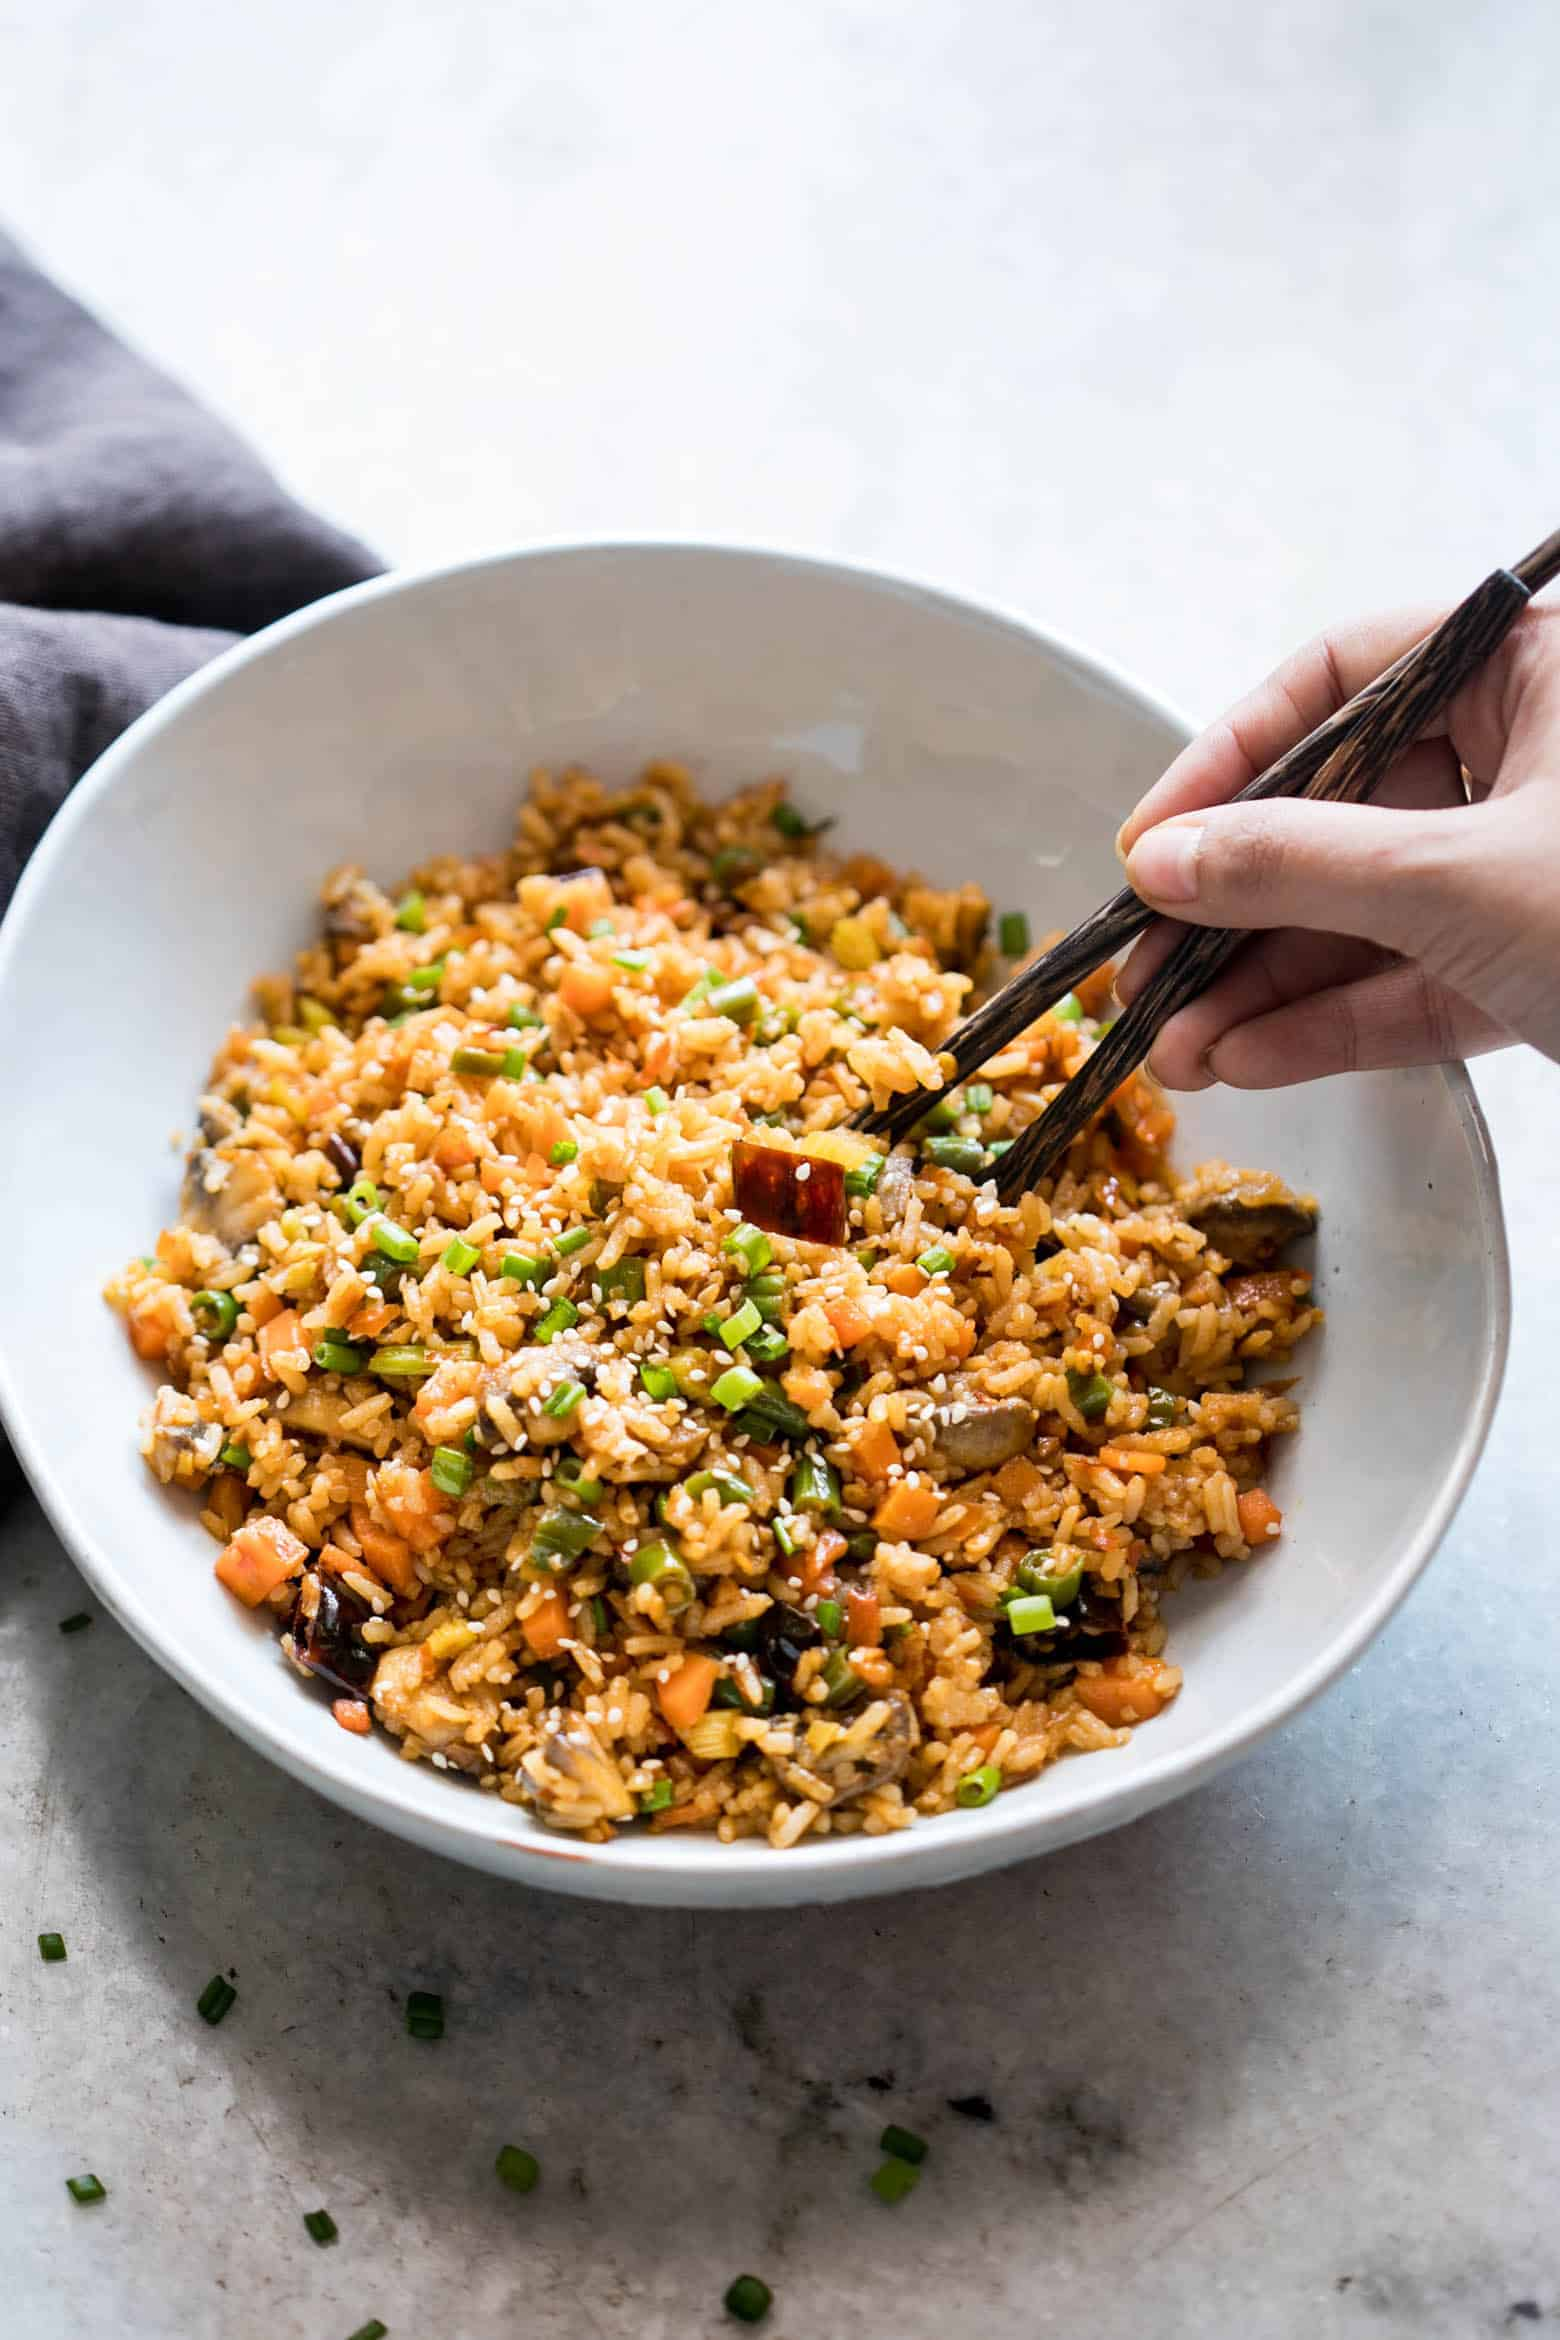 This is the best chinese schezwan fried rice you'll make - loaded with vegetables, spicy and super easy! Made with sichuan sauce, it's the best way to use leftover rice.